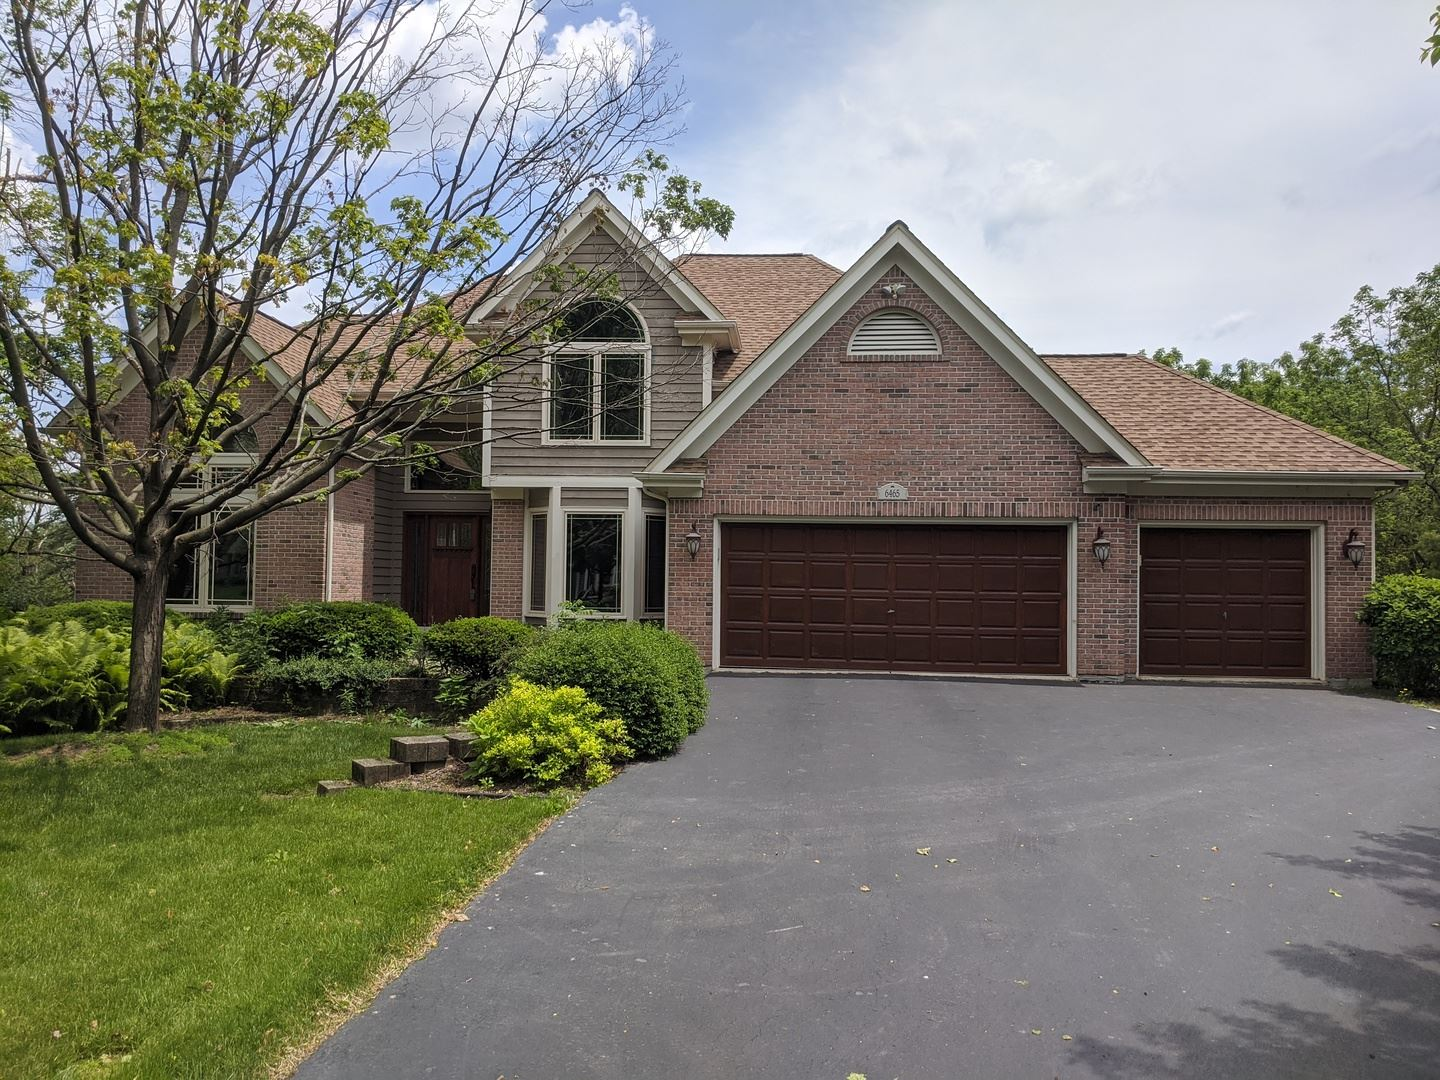 6465 Bobby Jones Lane, Woodridge, IL 60517 - #: 10660175